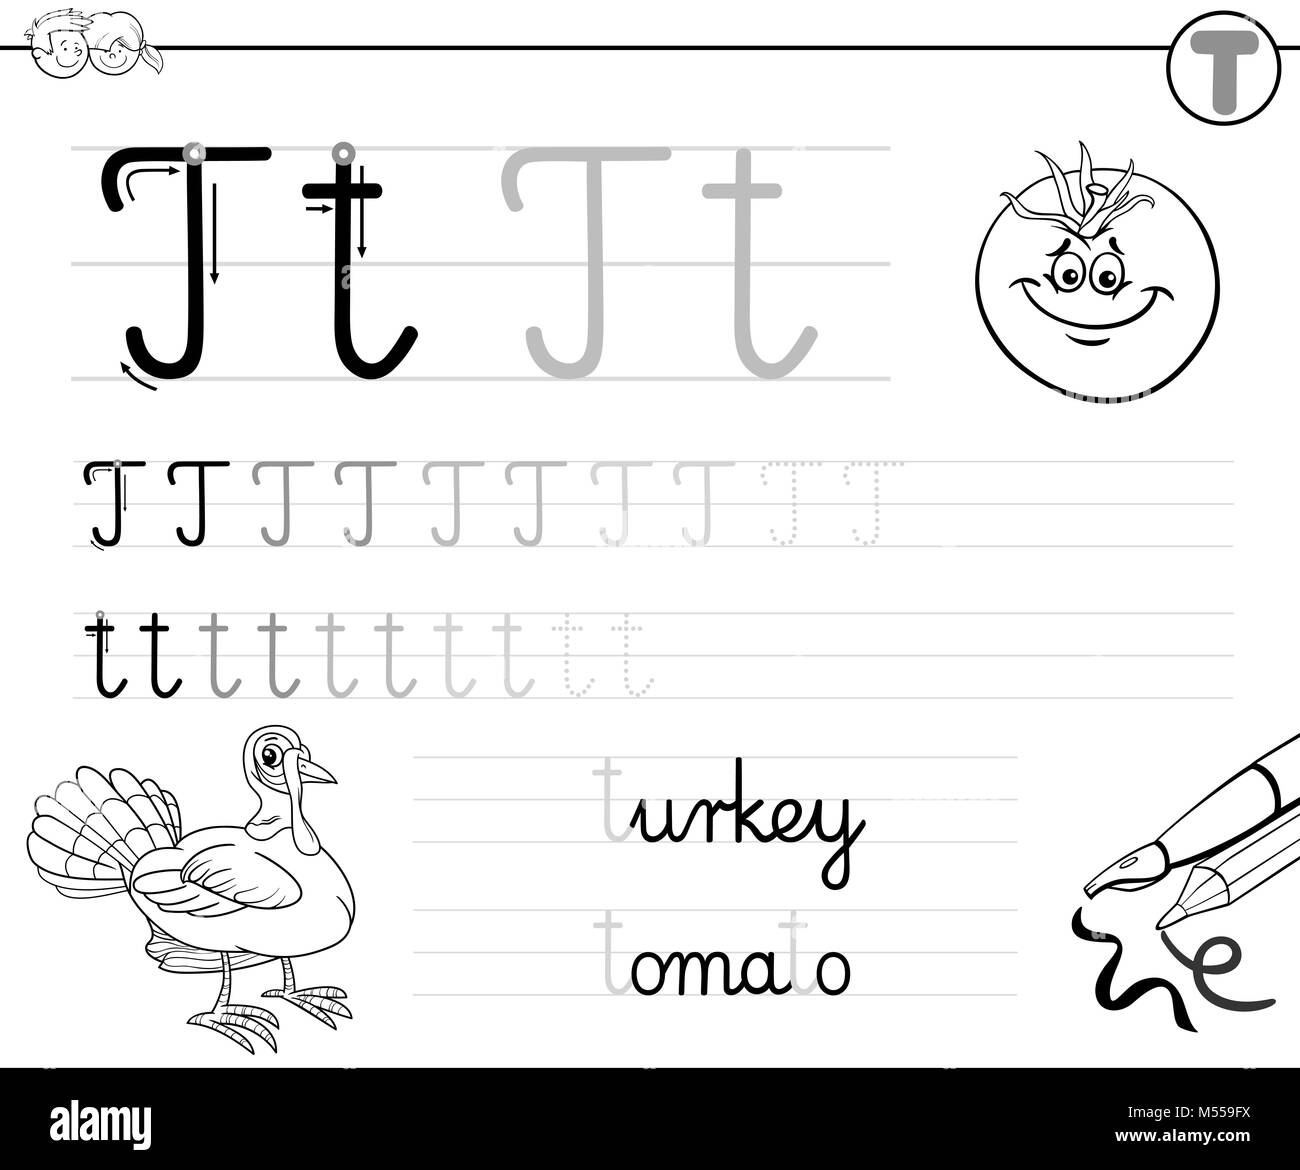 learn to write letter T workbook for kids Stock Photo